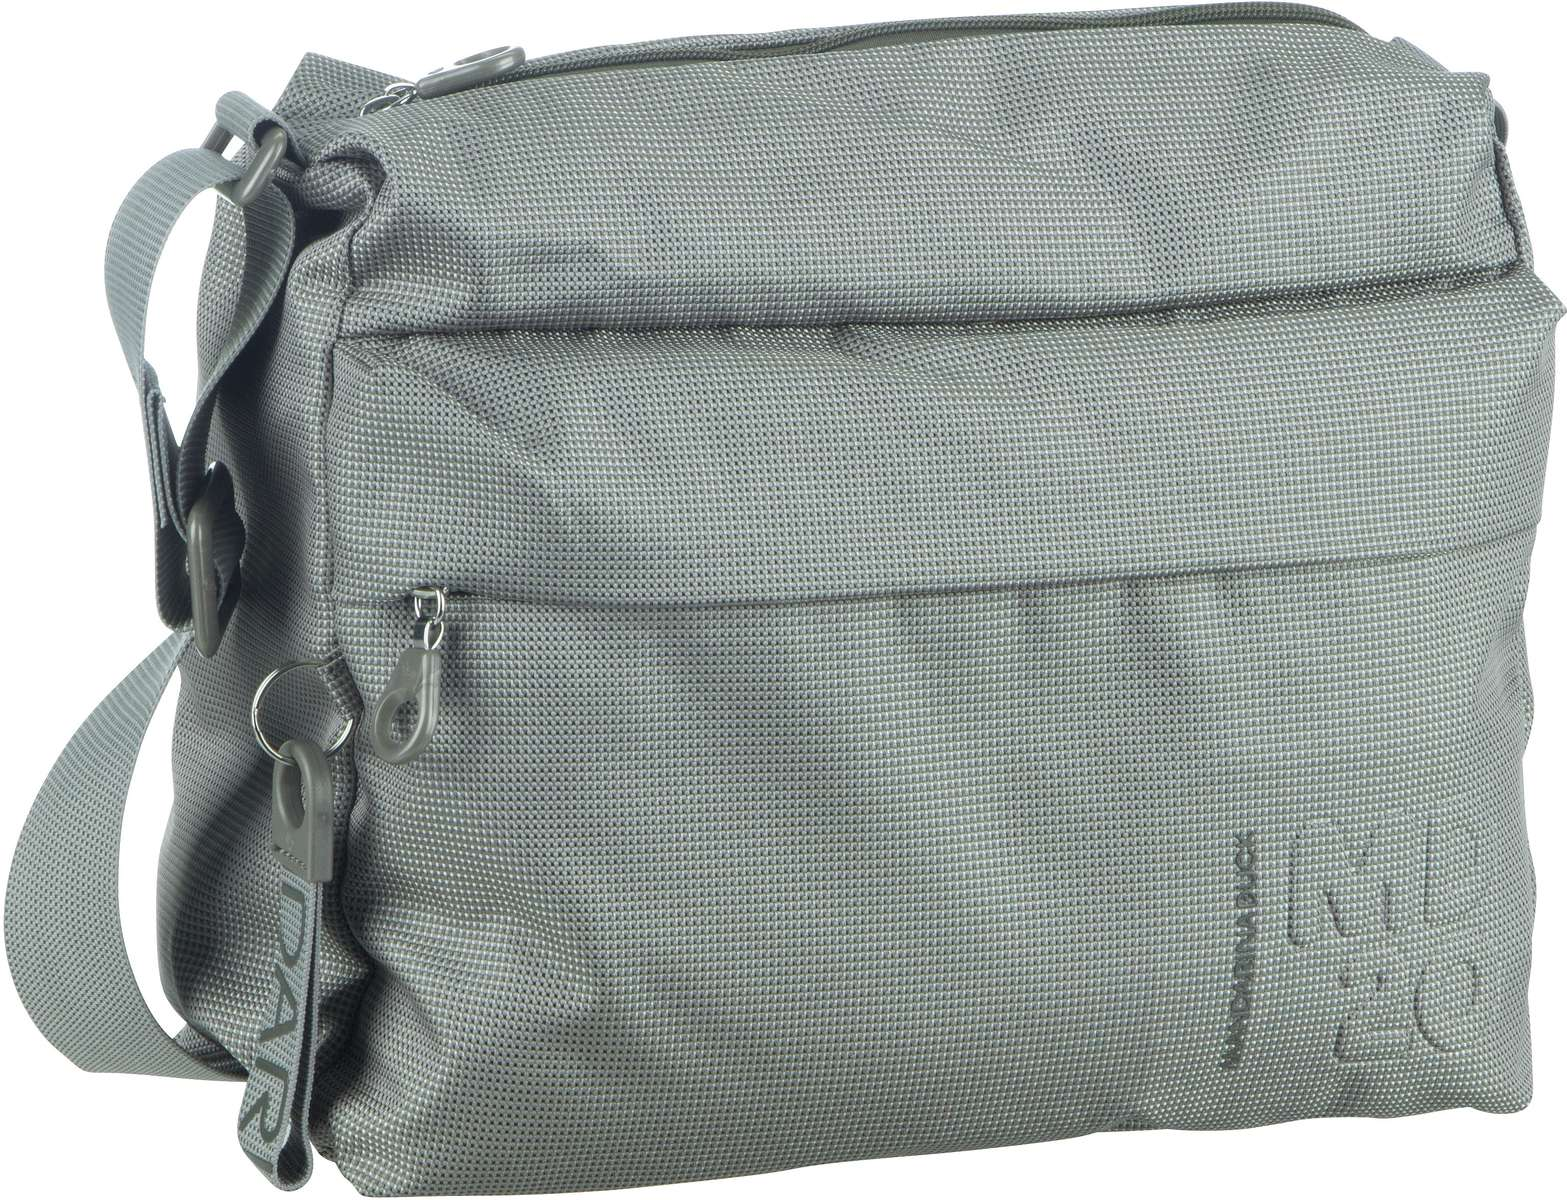 Umhängetasche MD20 Crossover Bag QMTT4 Soldier